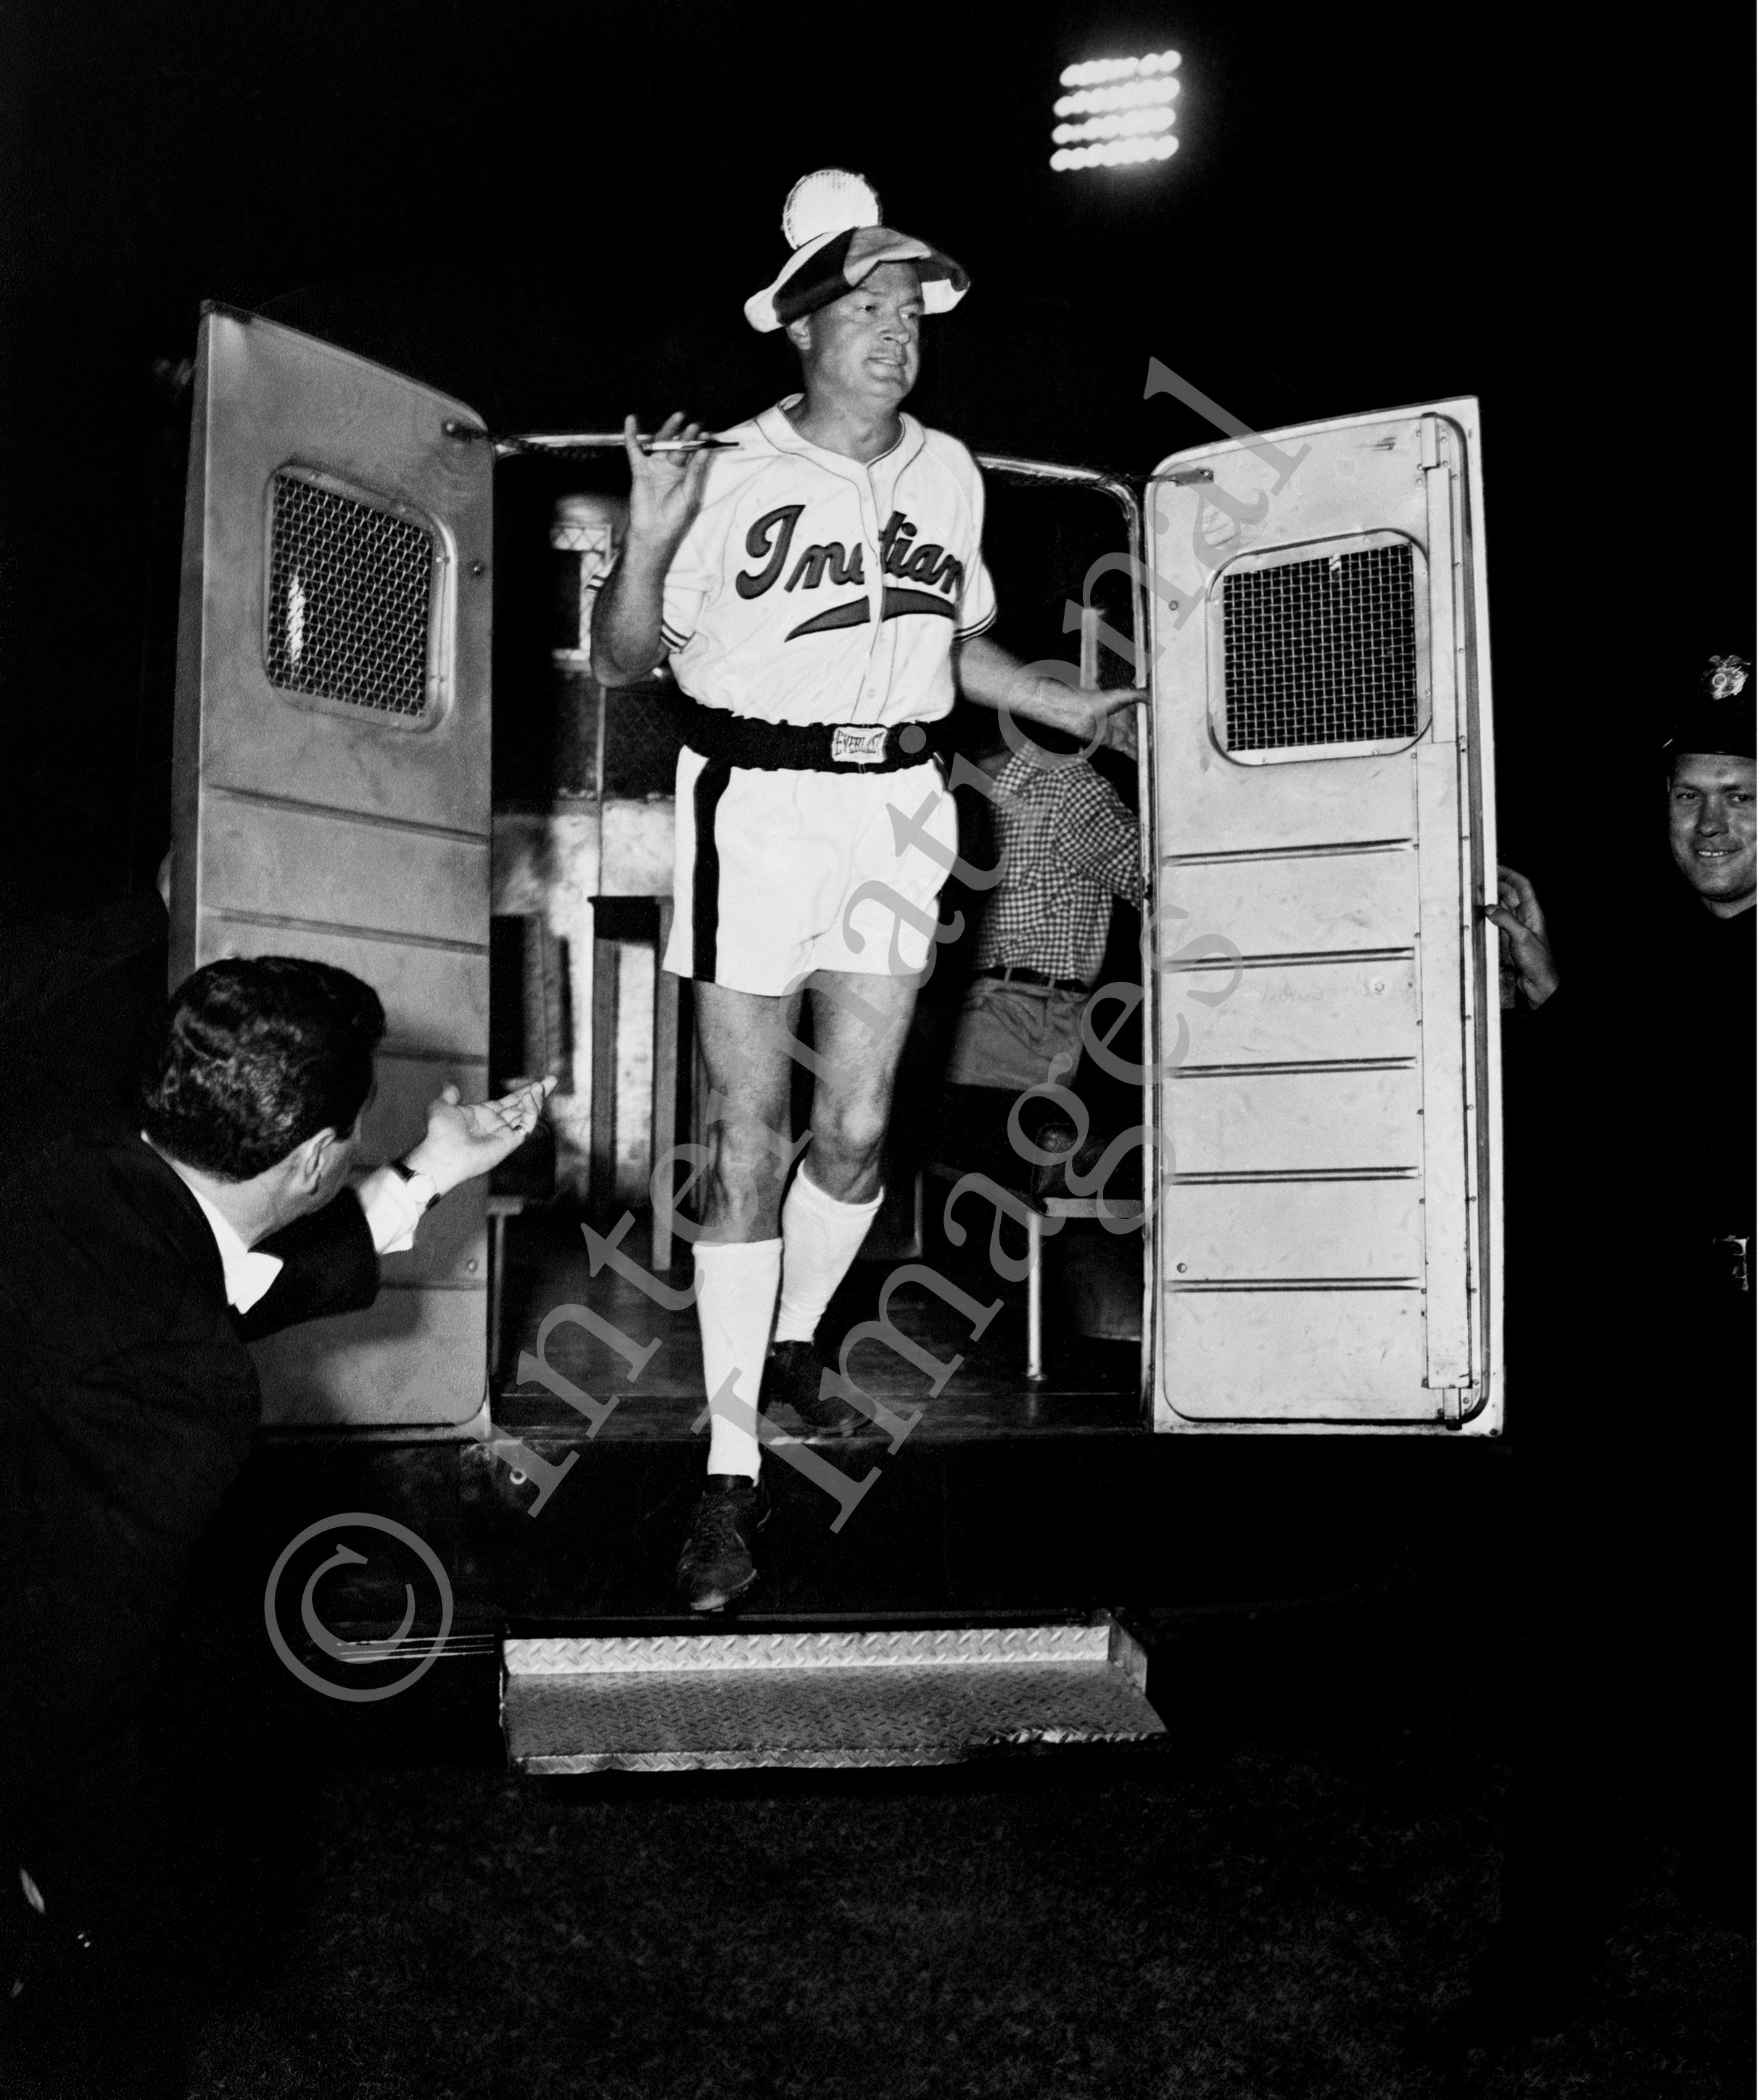 Bob Hope exits trailer with shorts and Cleveland Indian baseball shirt (0018)